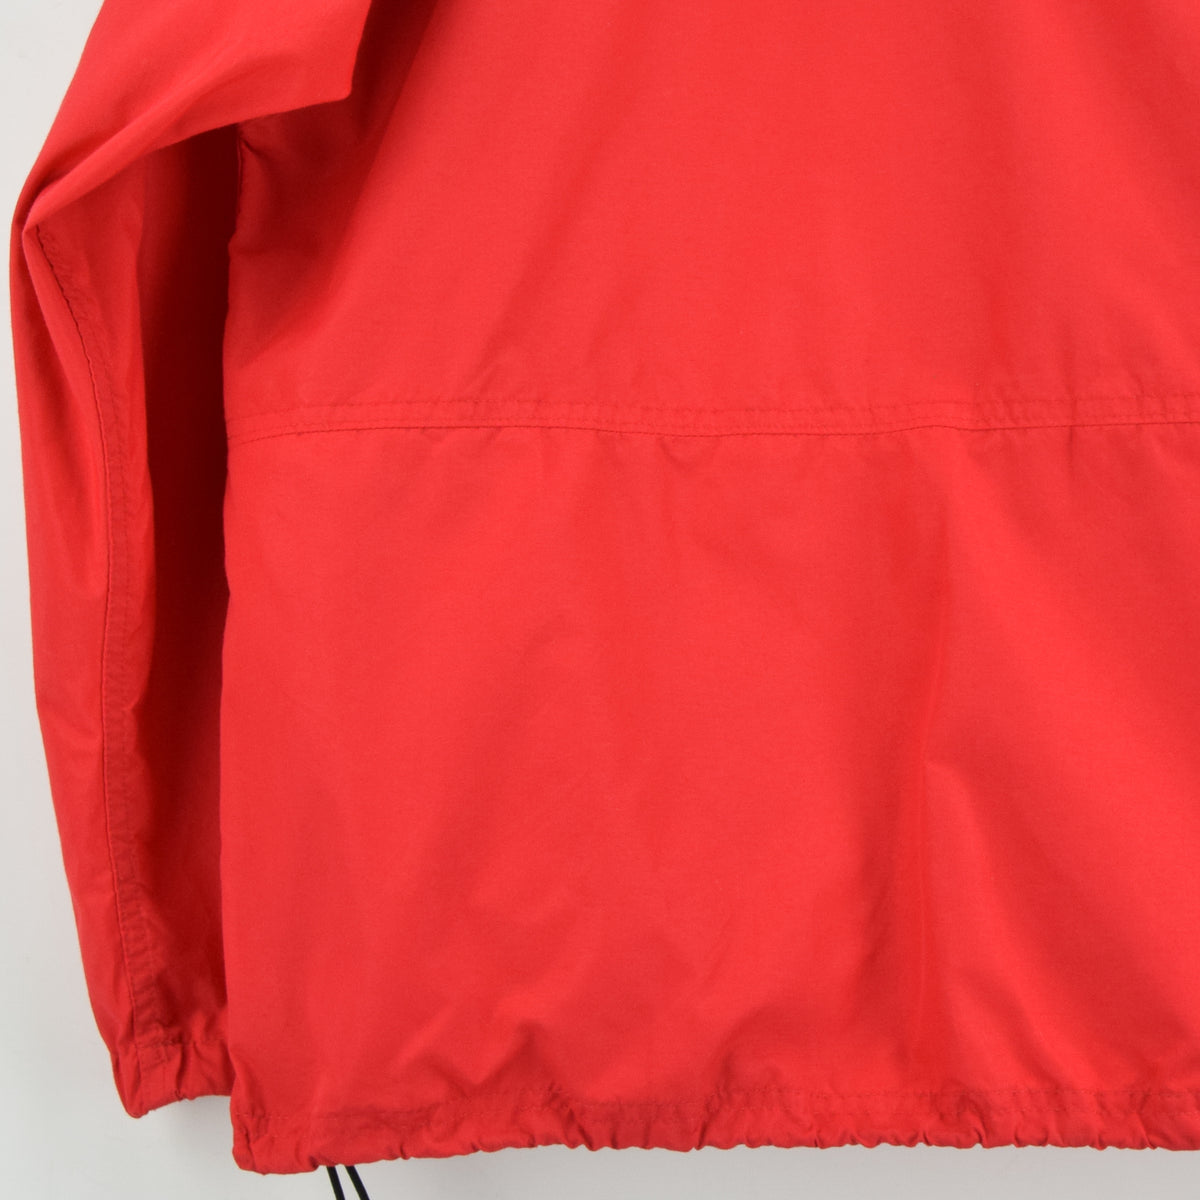 Vintage LL Bean Red Hooded Nylon Cagoule Unisex Jacket Made in USA S back hem